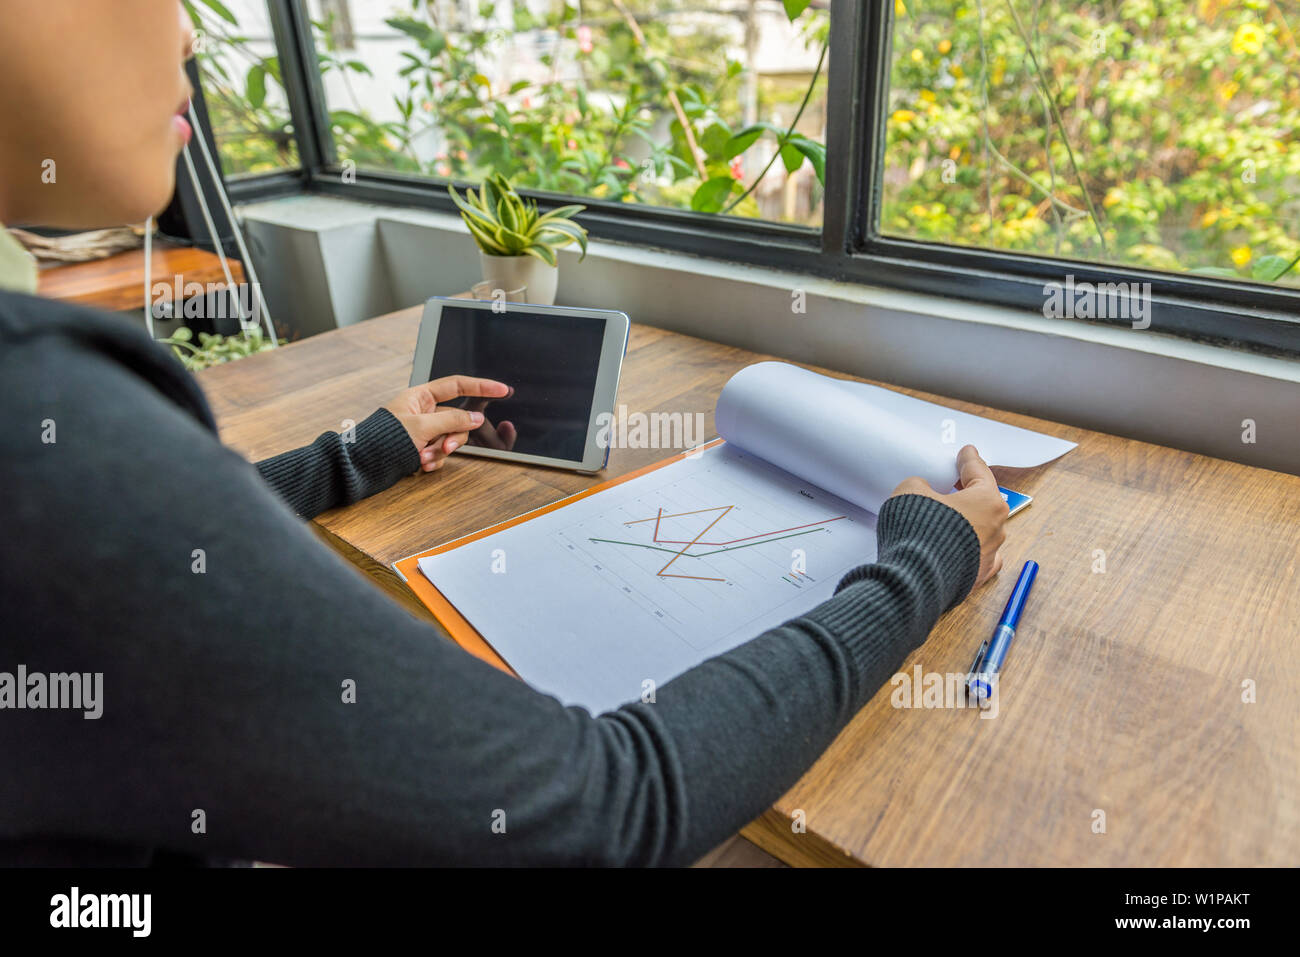 Woman using tablet and working on business graph document - Stock Image